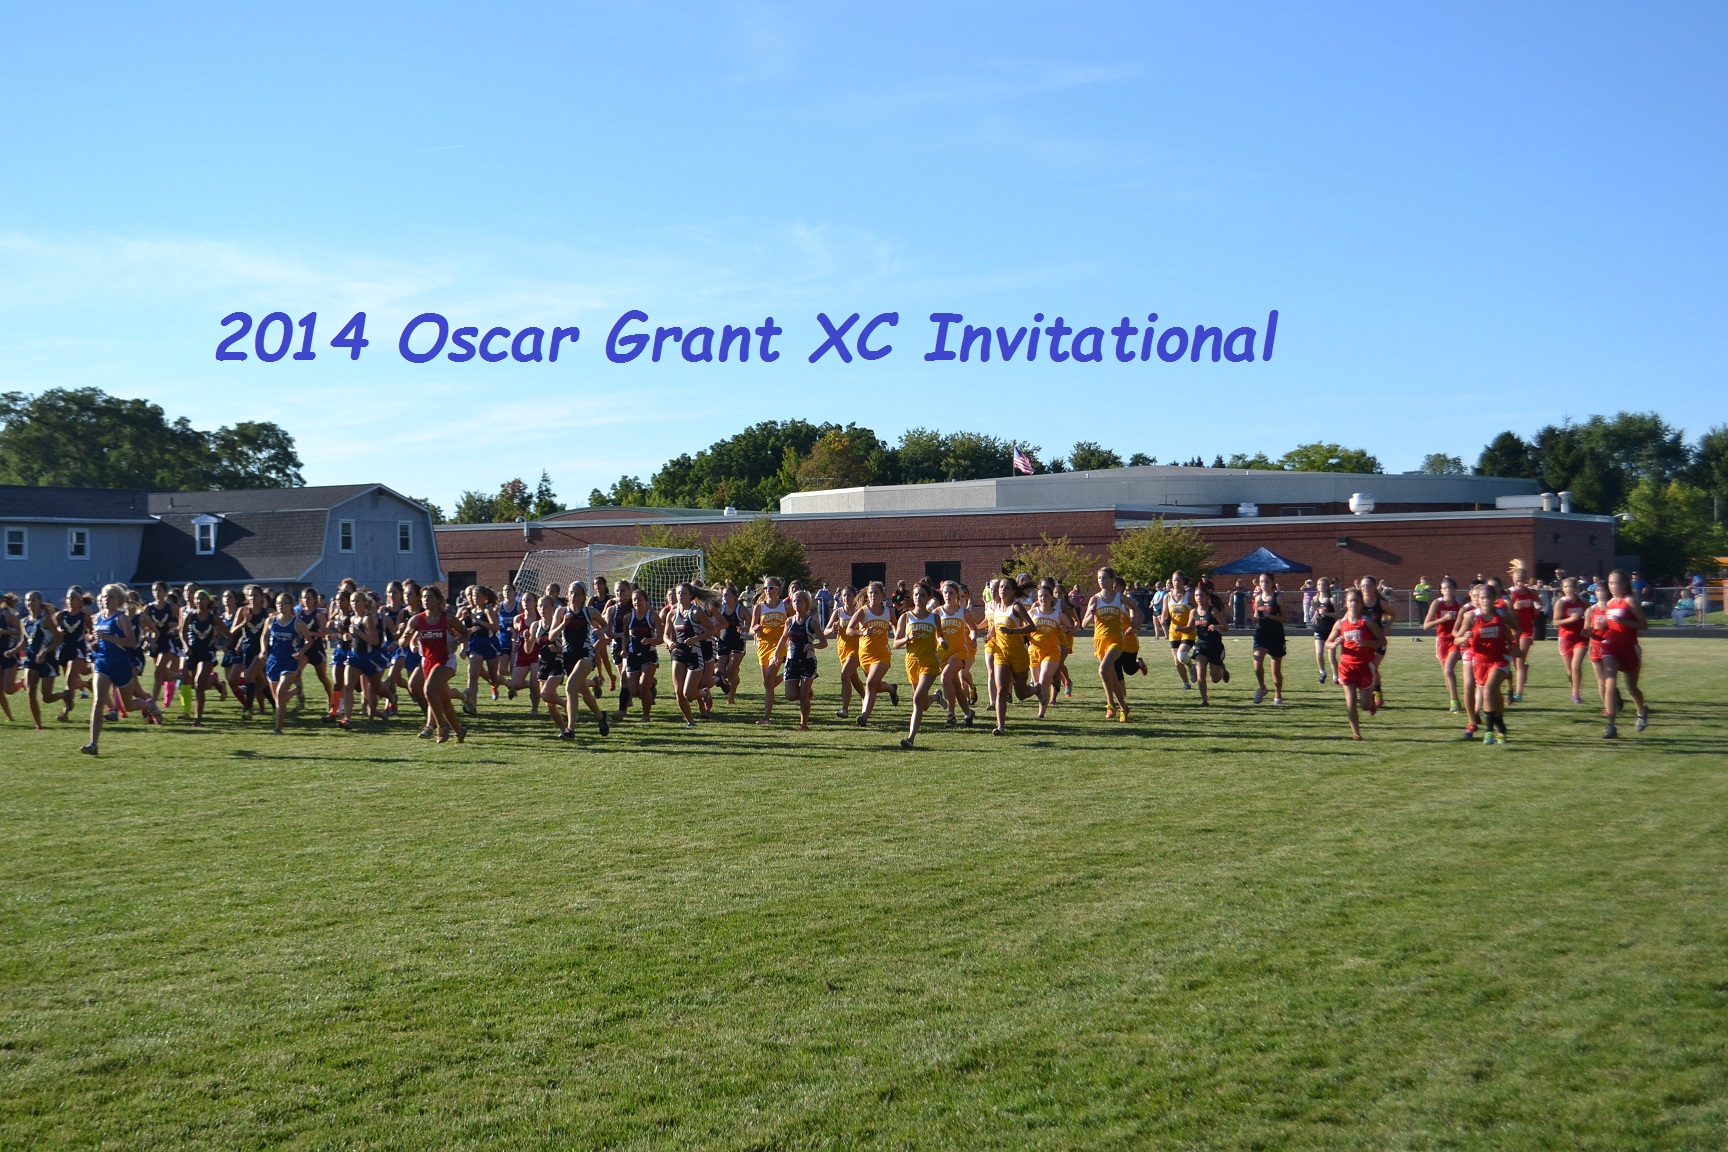 2014 OSCAR GRANT XC INVITATIONAL